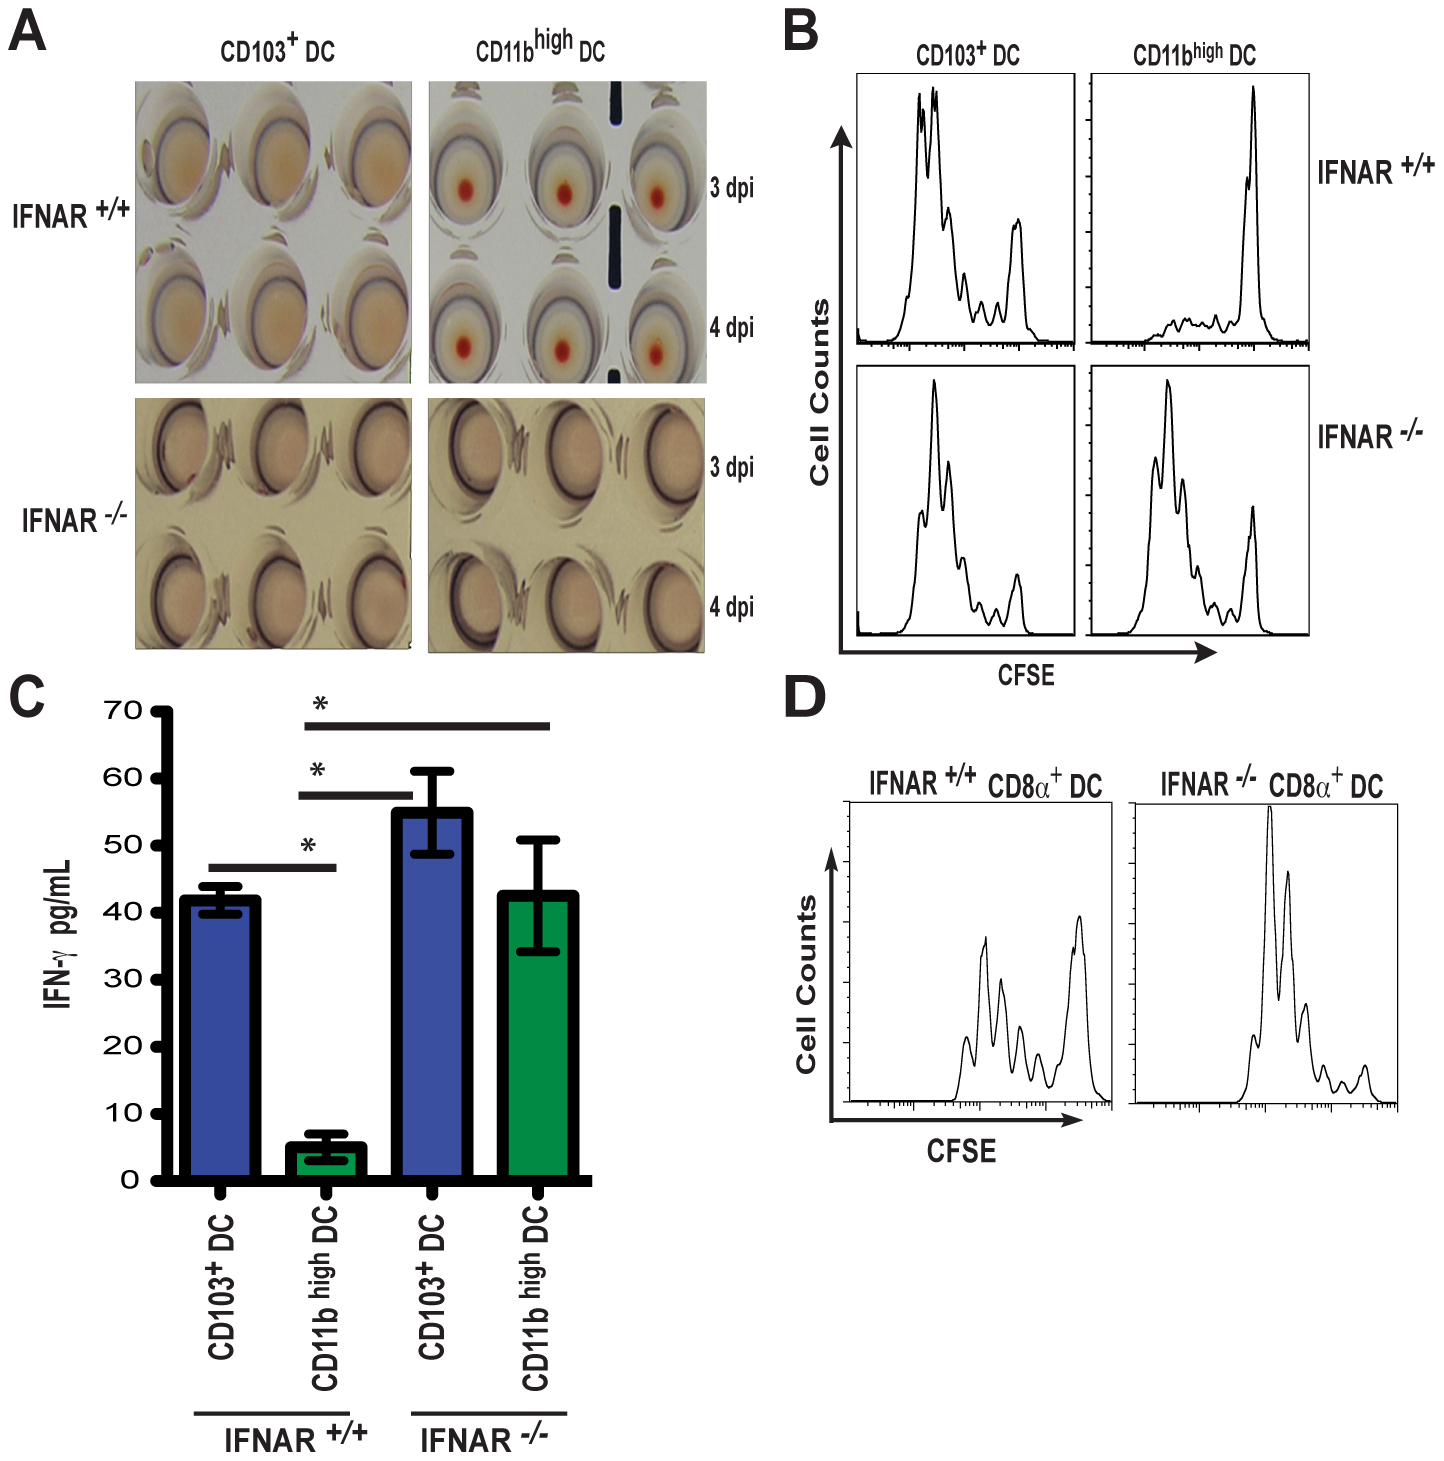 IFNAR signaling determines class-I restricted antigen presentation by CD11b <sup>high</sup> DCs during influenza virus infection.